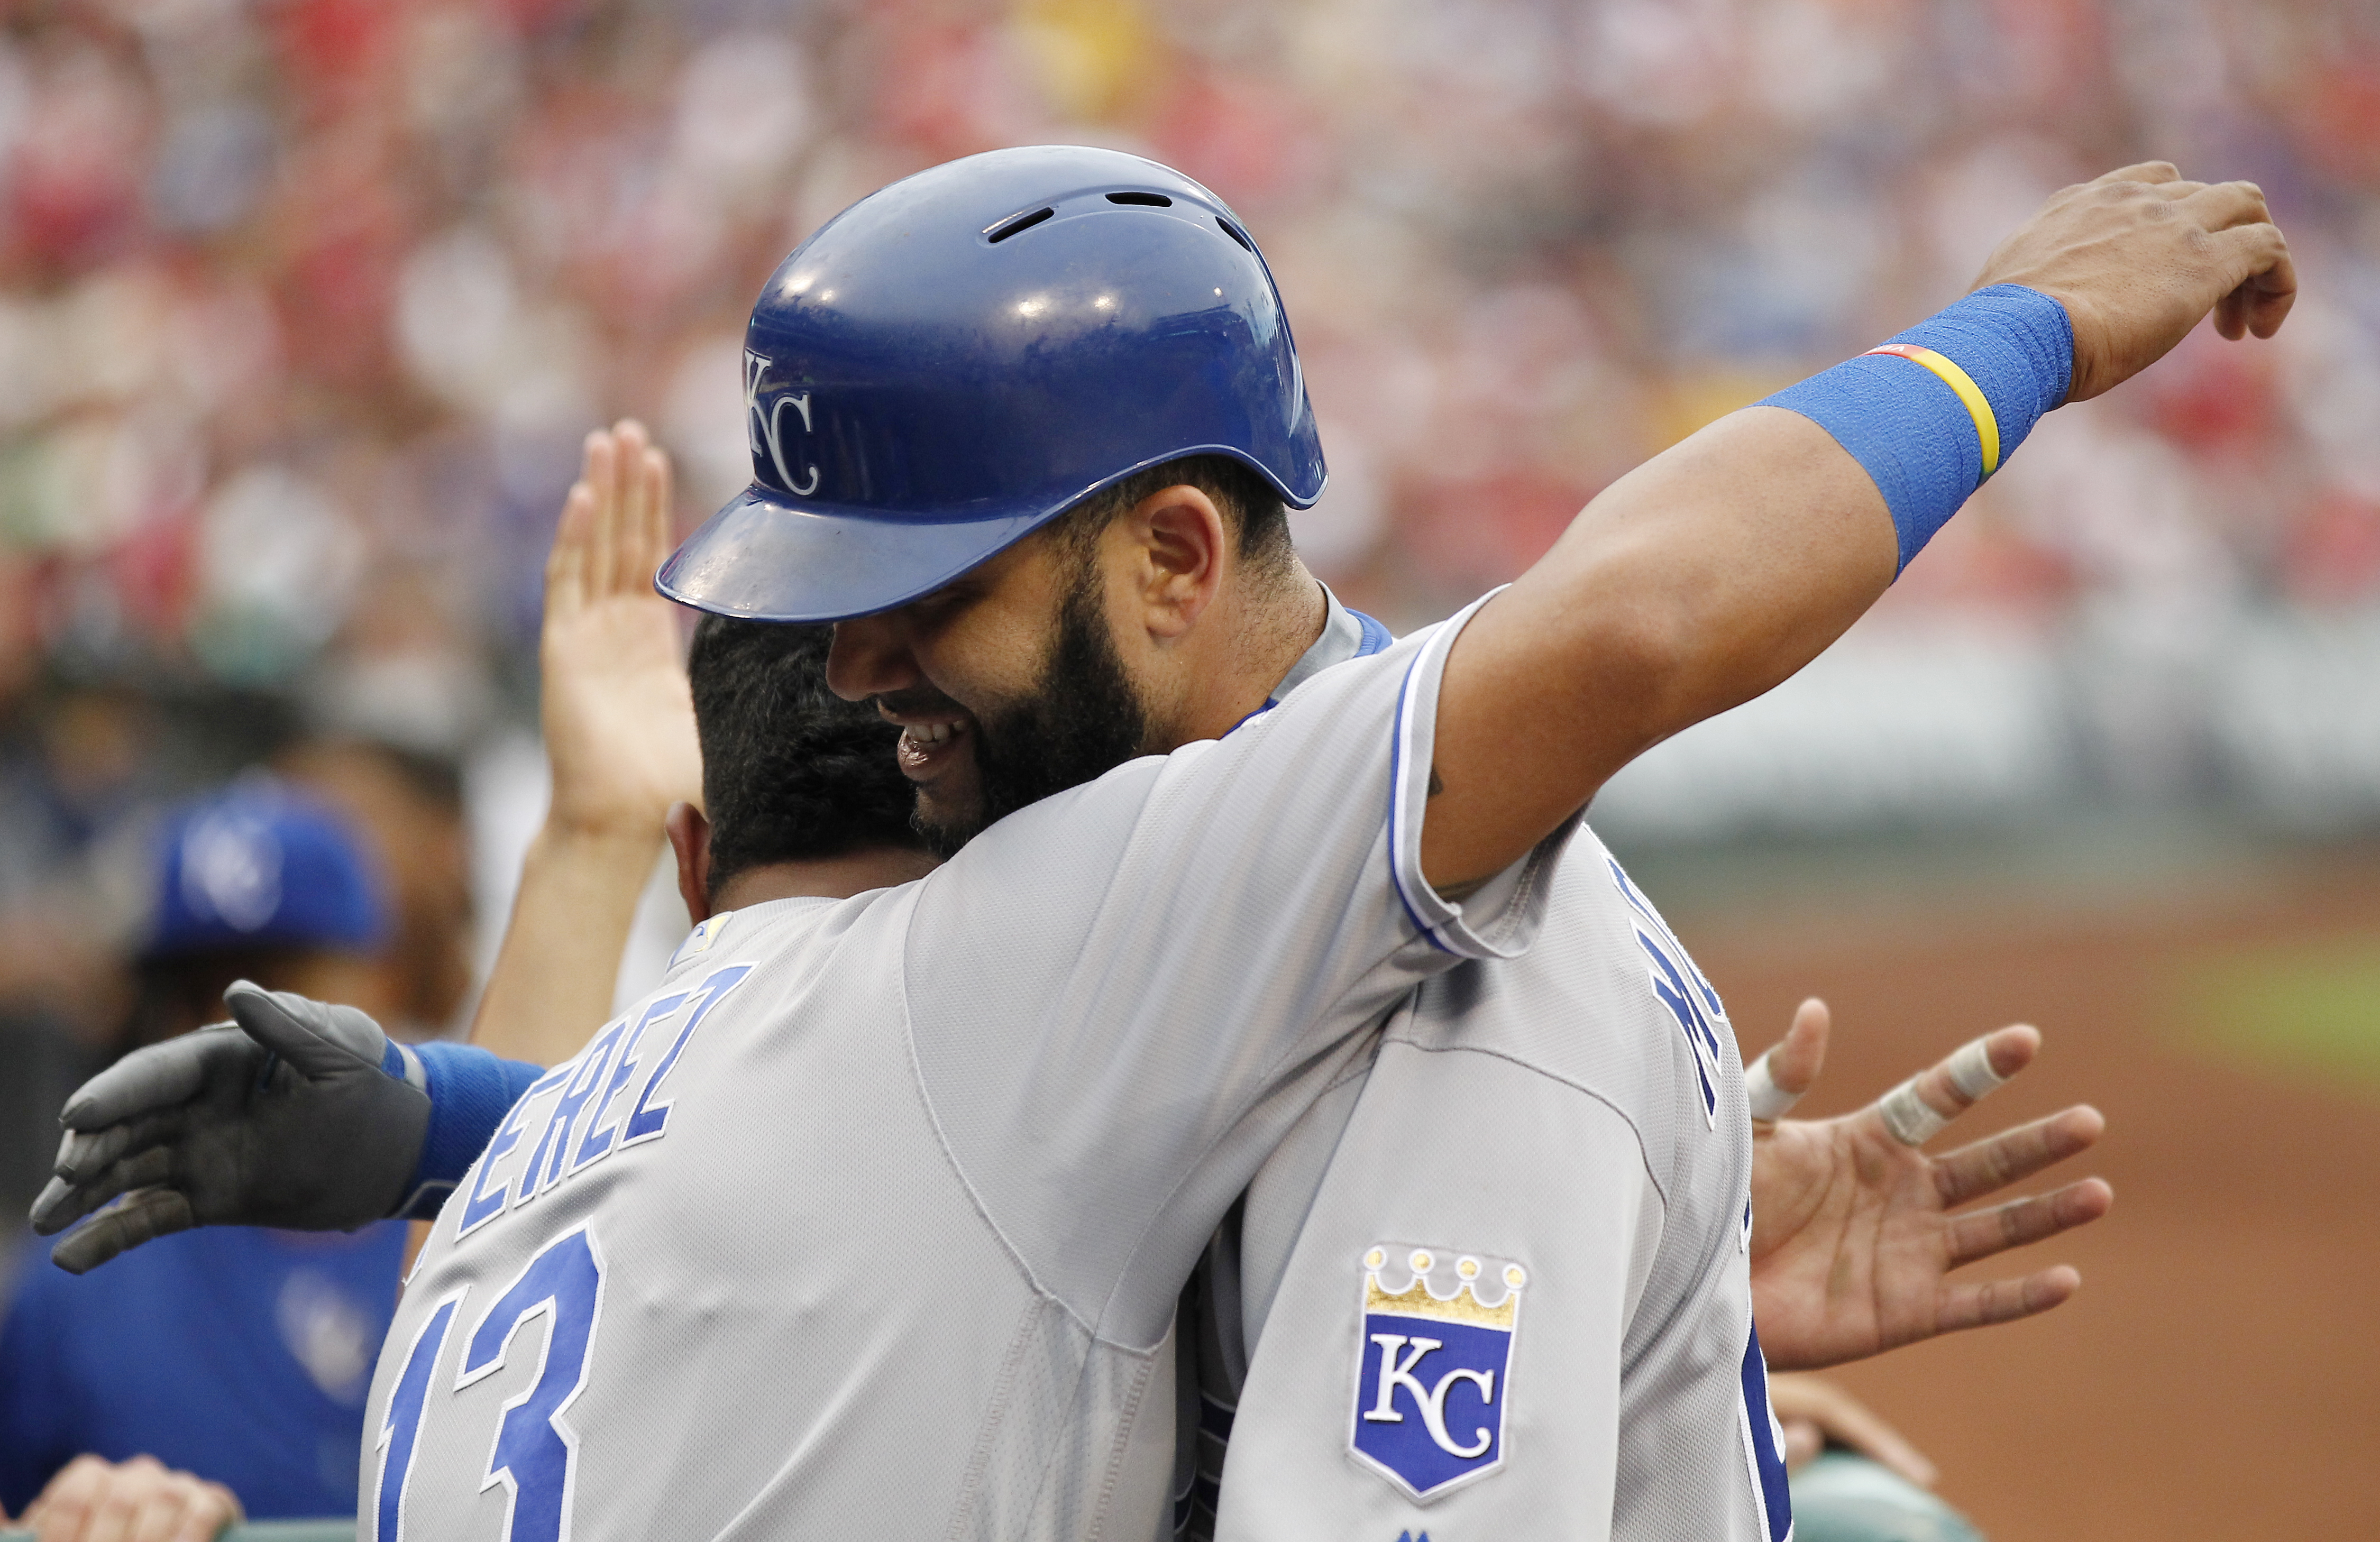 Kansas City Royals' Salvador Perez, left, hugs Kendrys Morales who returns to the dugout after his three-run home run  during the second inning of a baseball game against the Philadelphia Phillies, Saturday, July 2, 2016, in Philadelphia. (AP Photo/Tom Mi